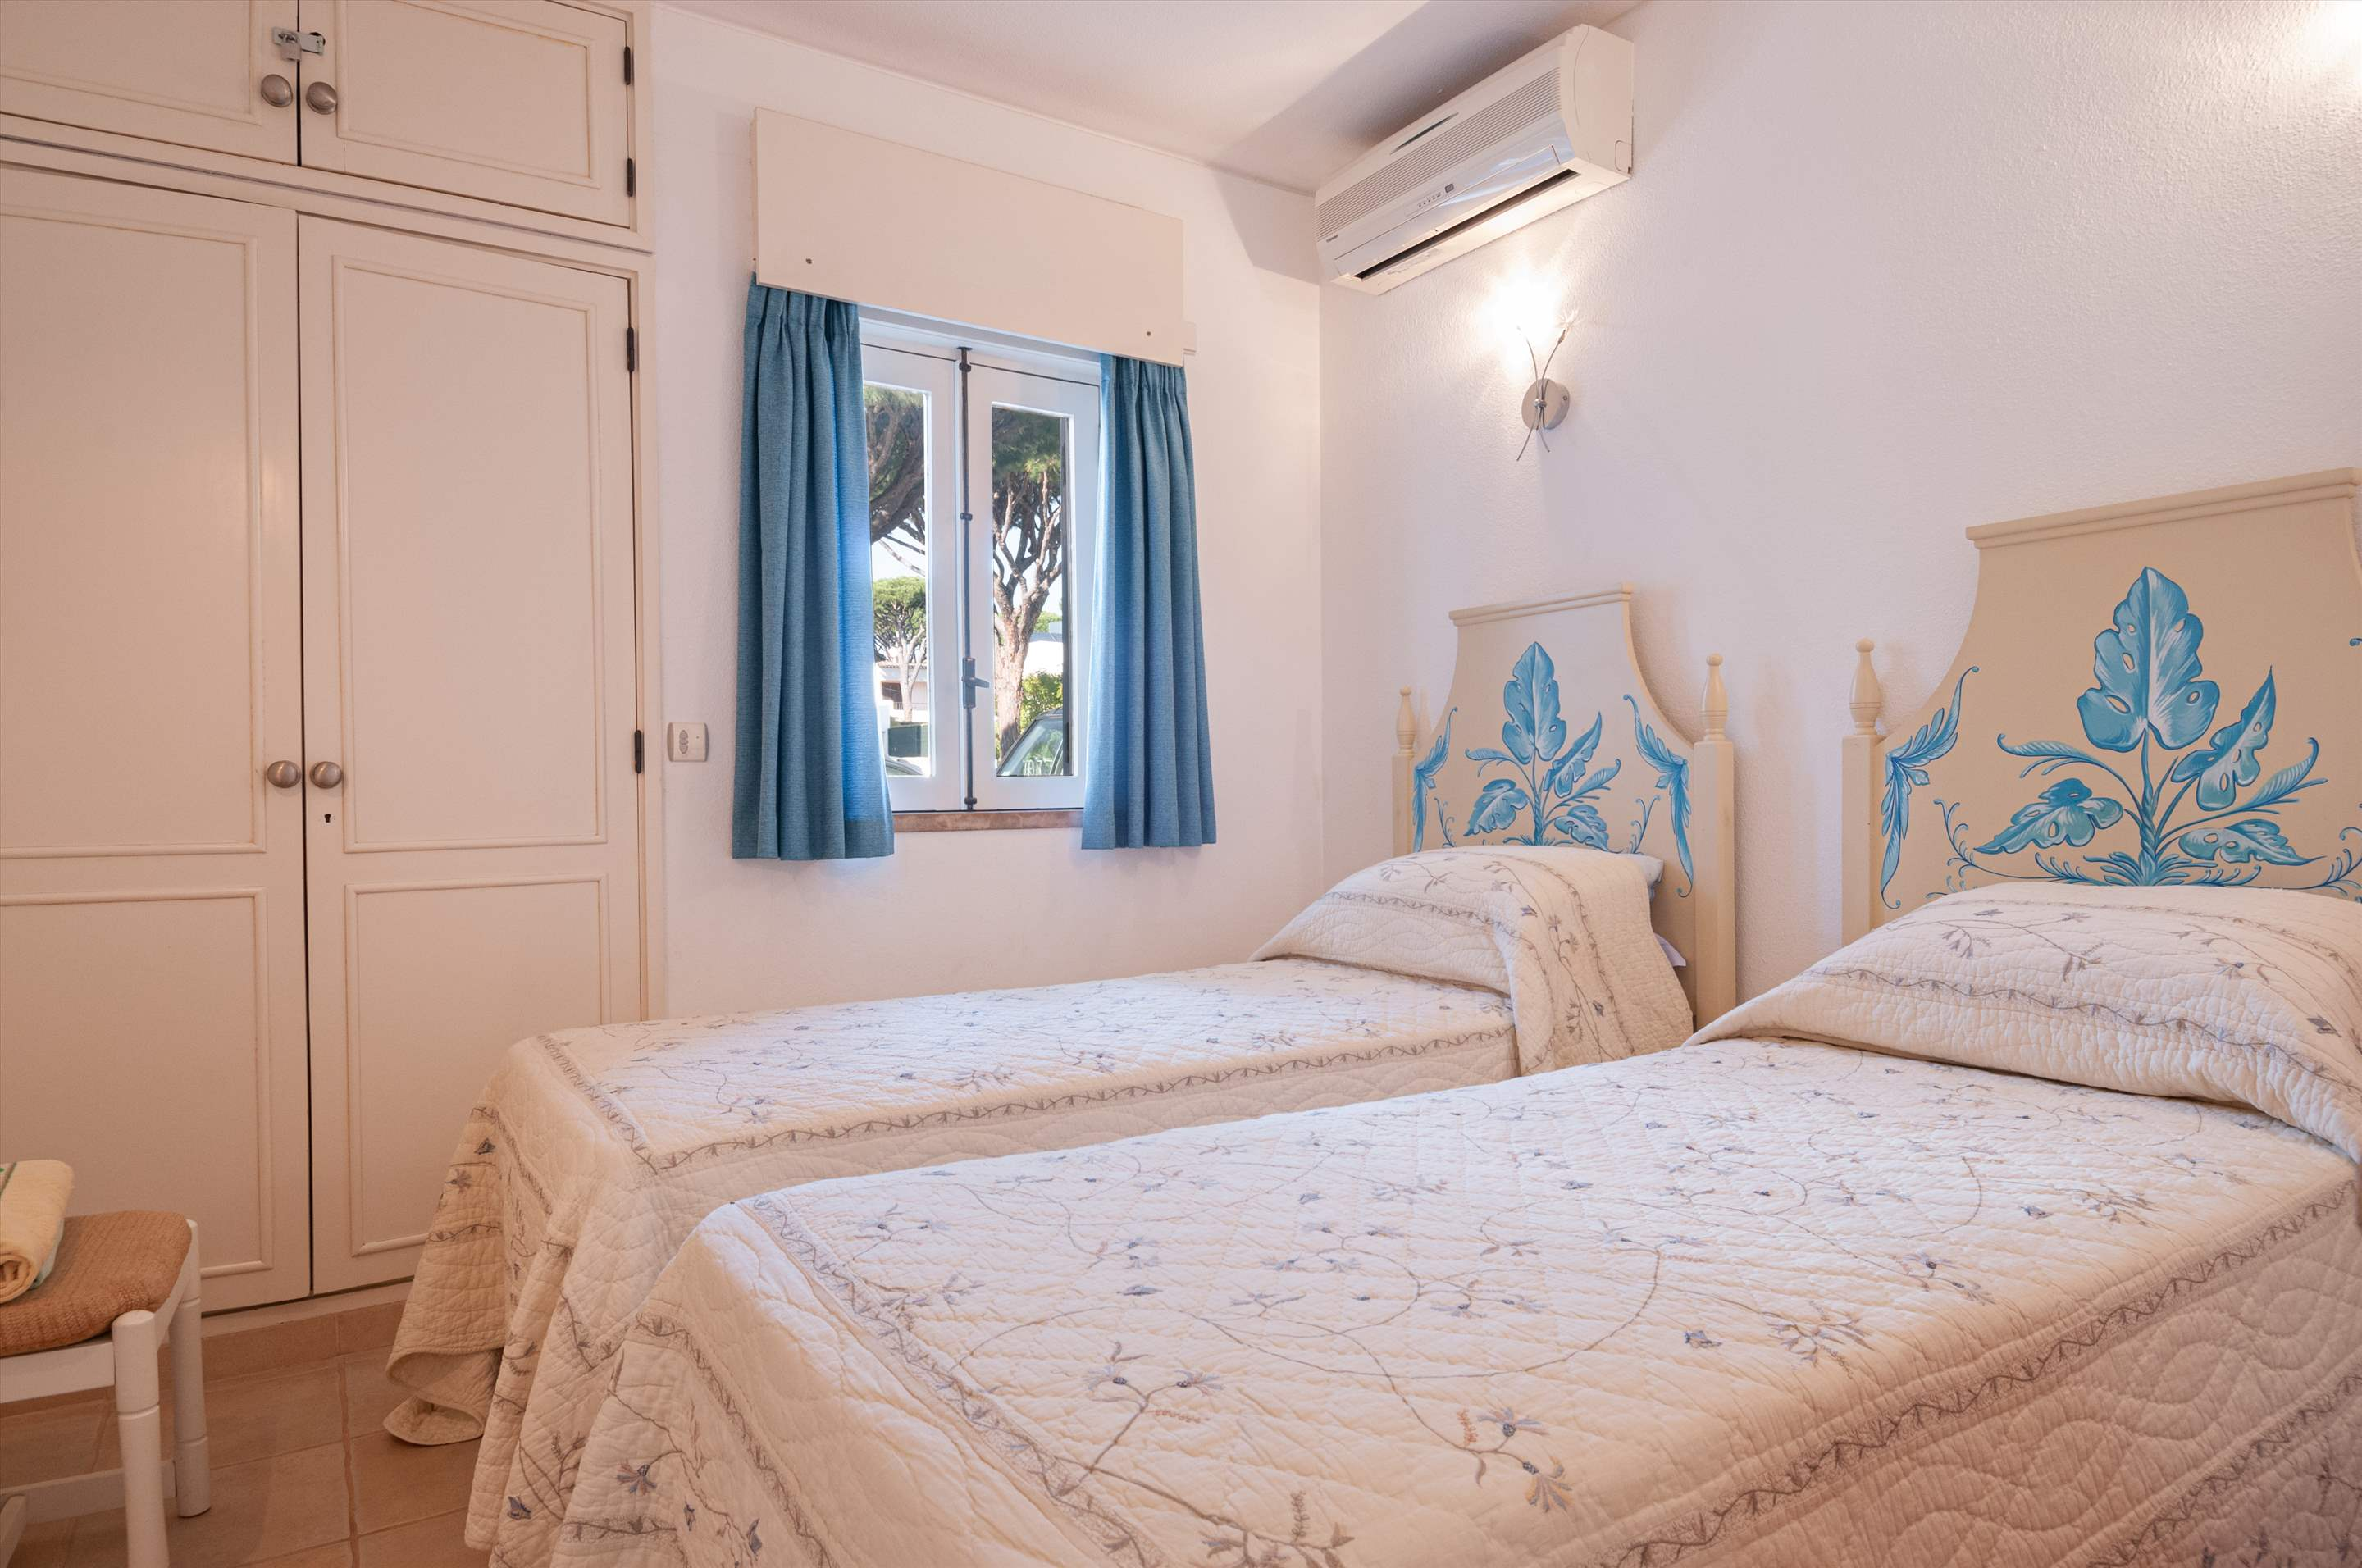 Villa Townhouse 2 Bedroom, 2 bedroom villa in Vale do Lobo, Algarve Photo #7